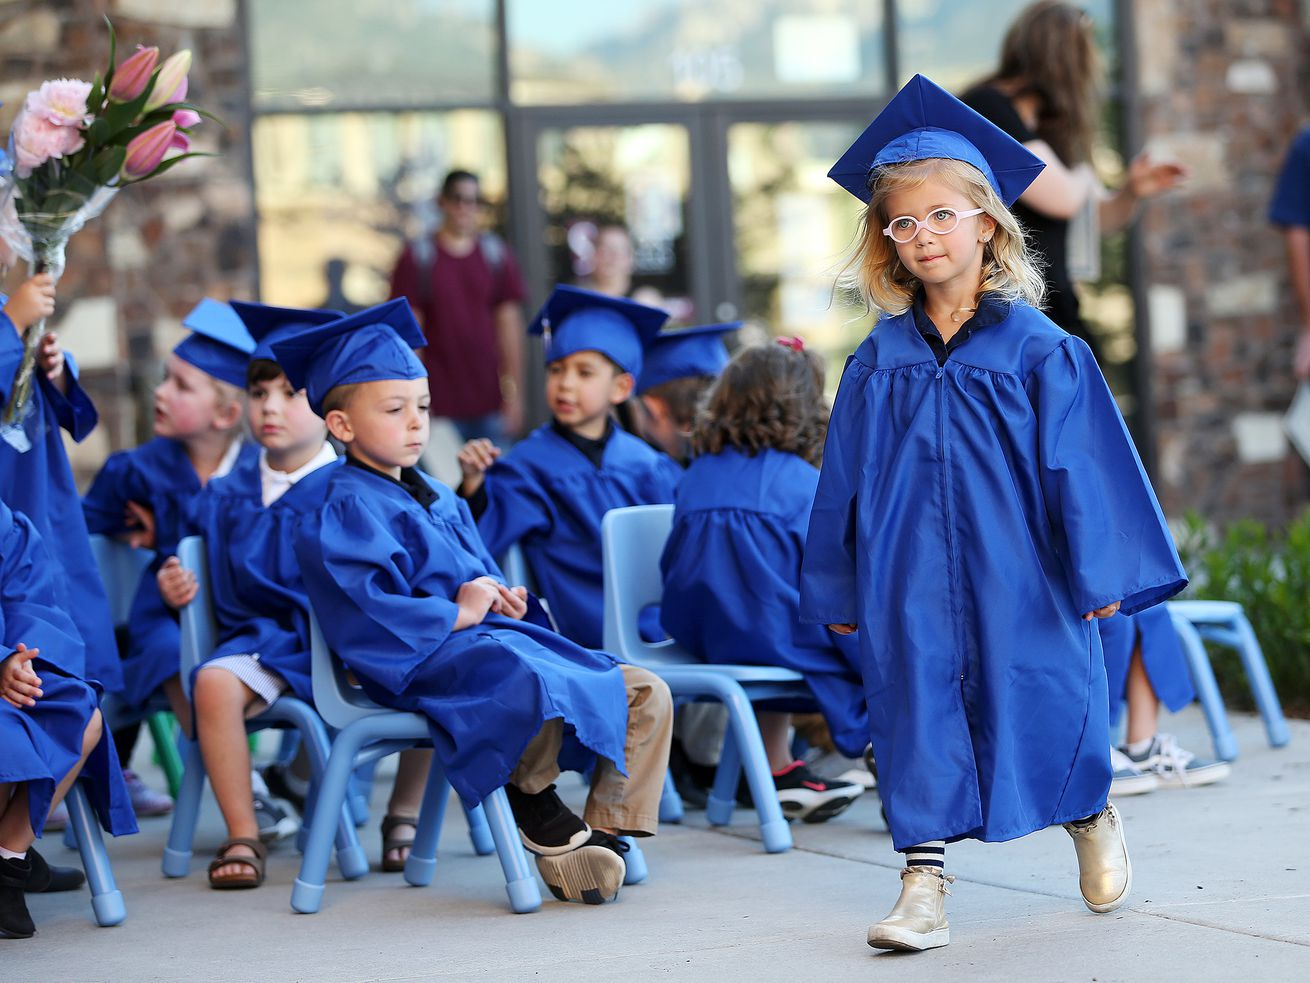 Starting them young: Pre-K grads celebrate success